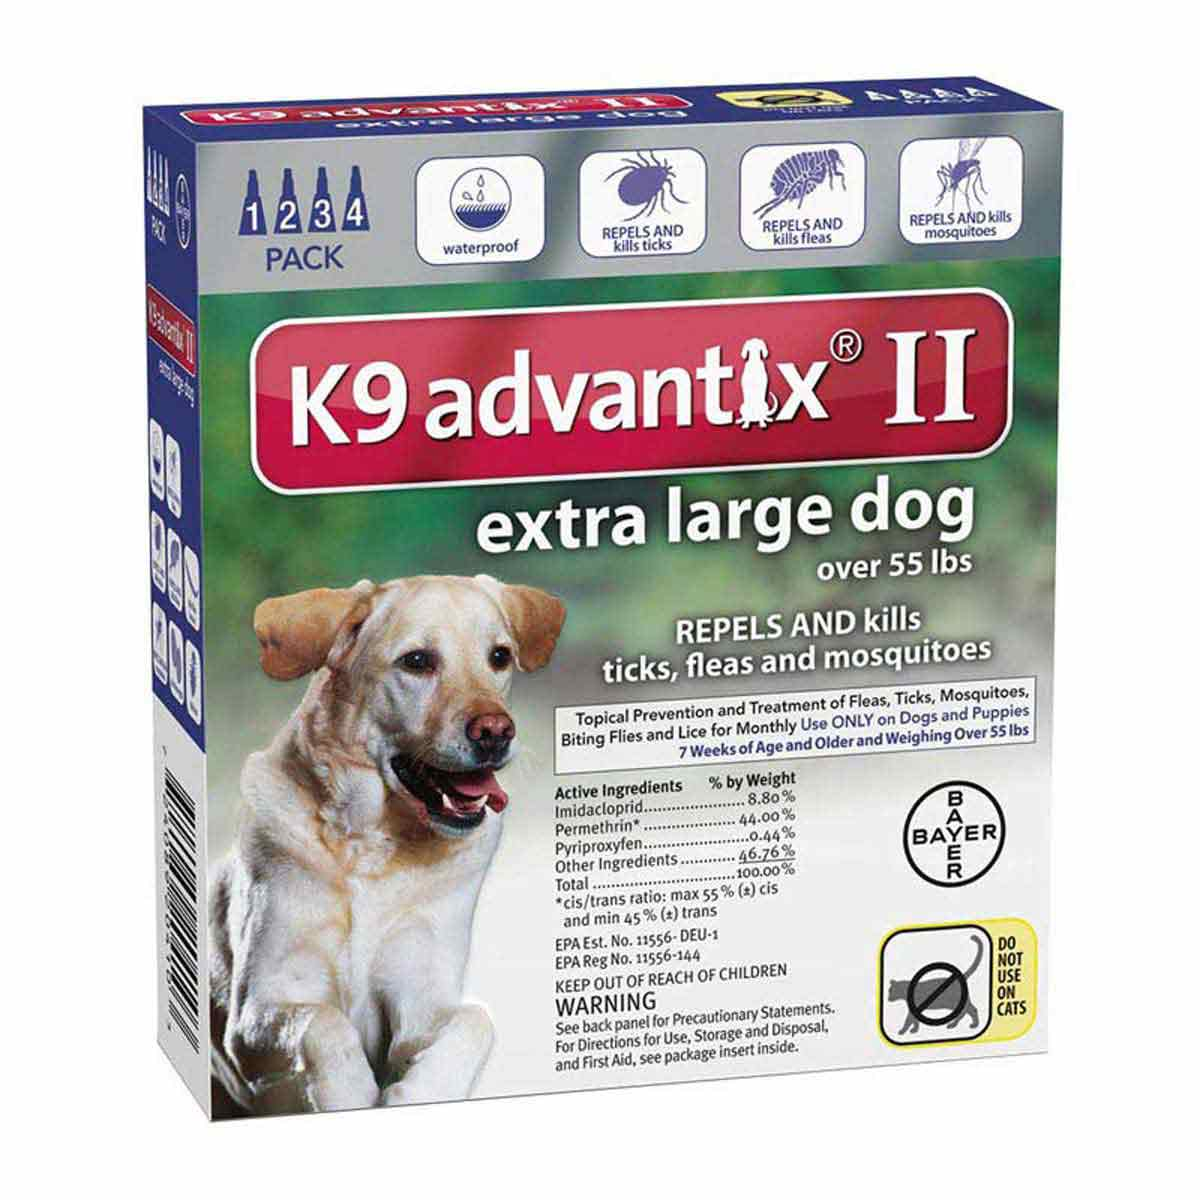 K9 Advantix II Blue Flea Treatment for large Dogs Over 55 lbs 4 Pack